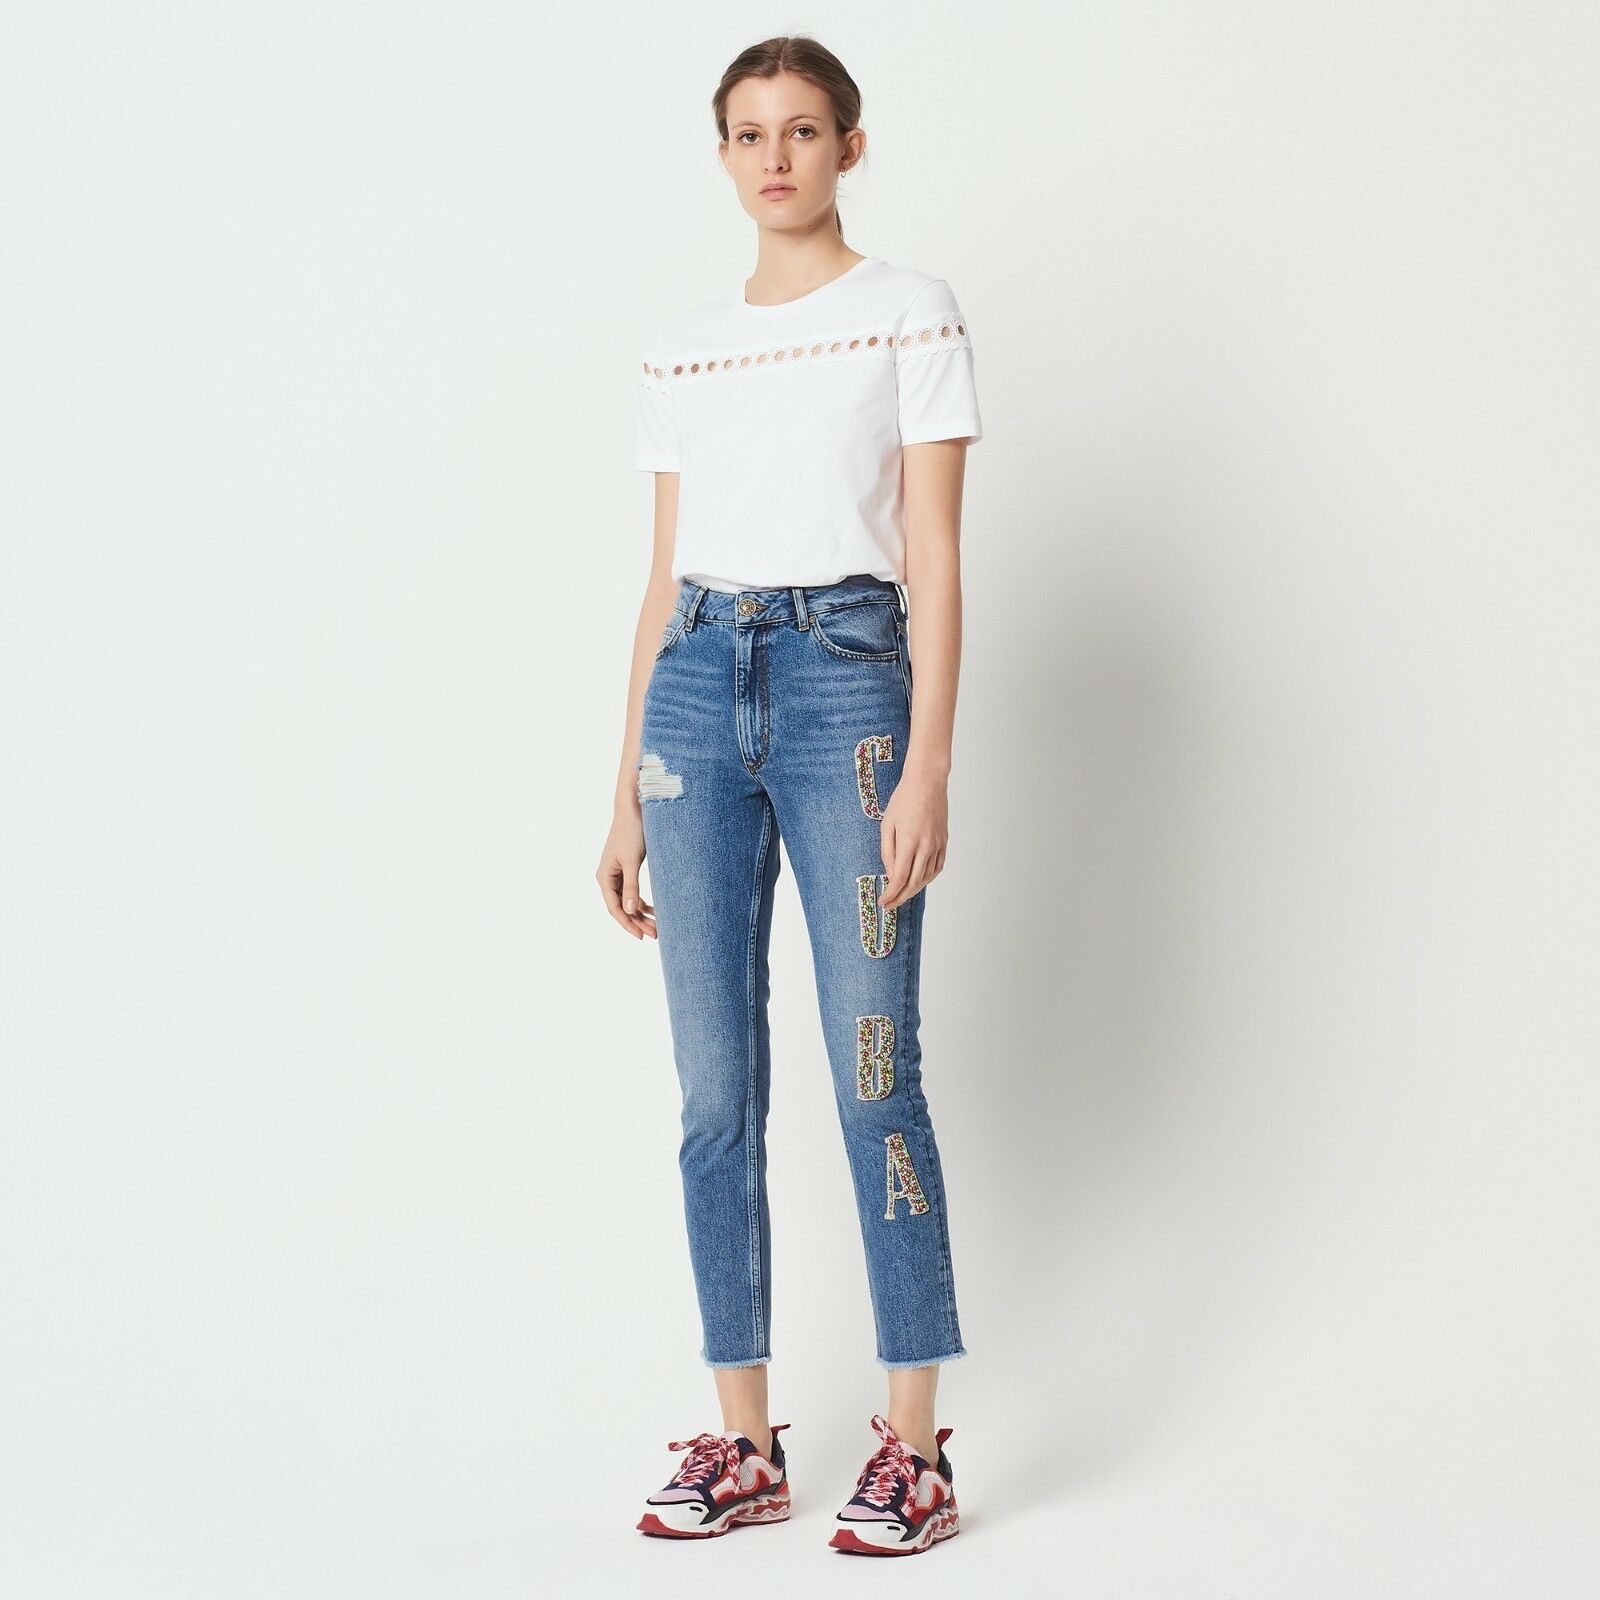 Sandro Embellished  Cuba  Jeans New with tags size 36 S